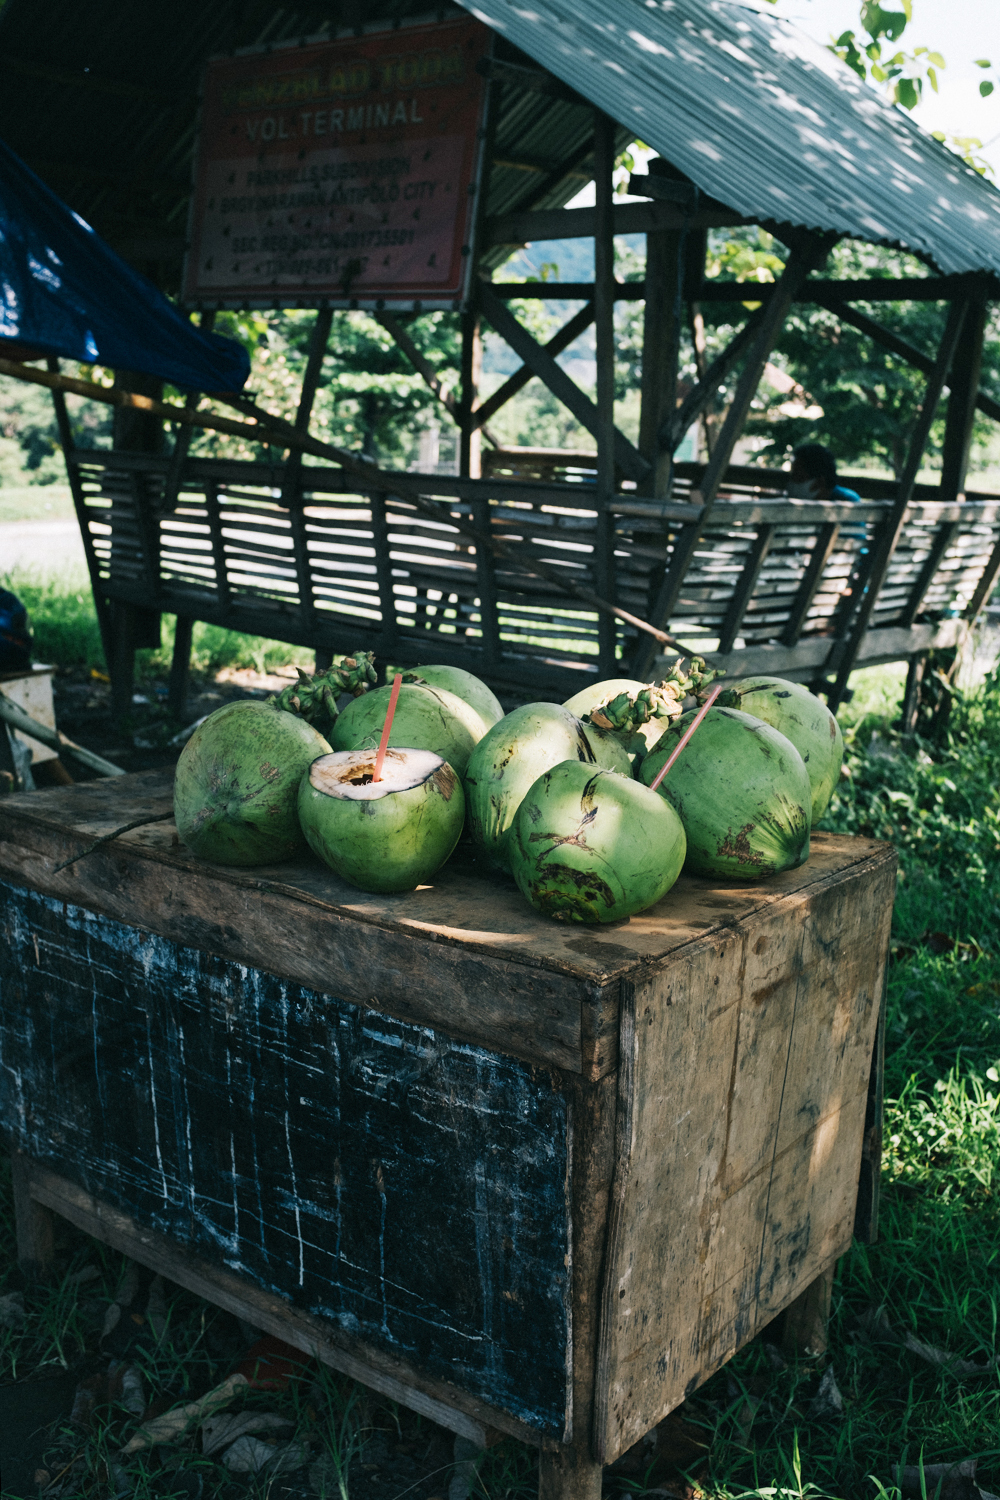 Fresh coconuts are cut open and served to customers